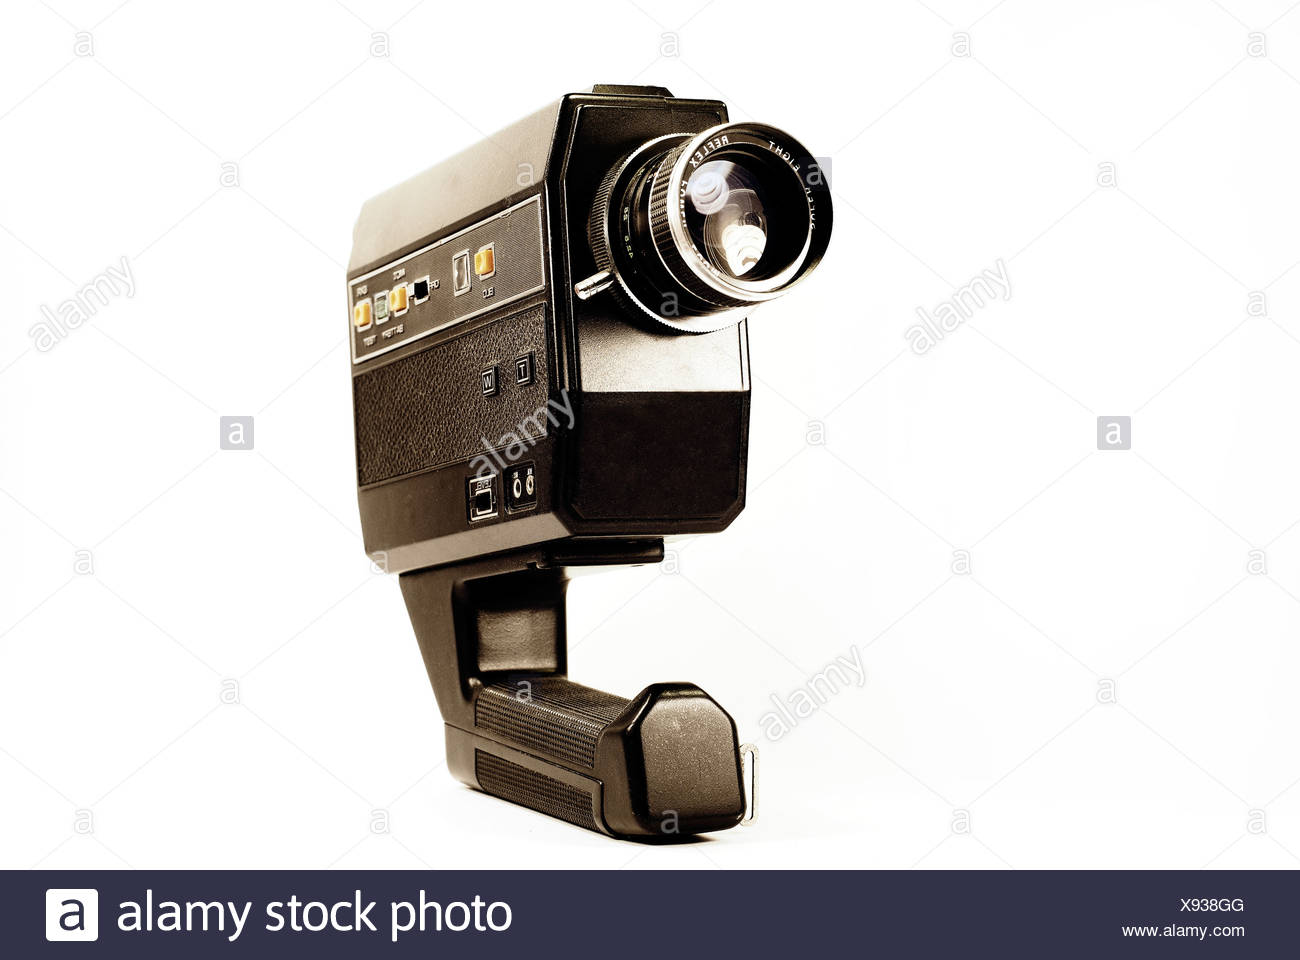 old 8 mm camera - Stock Image